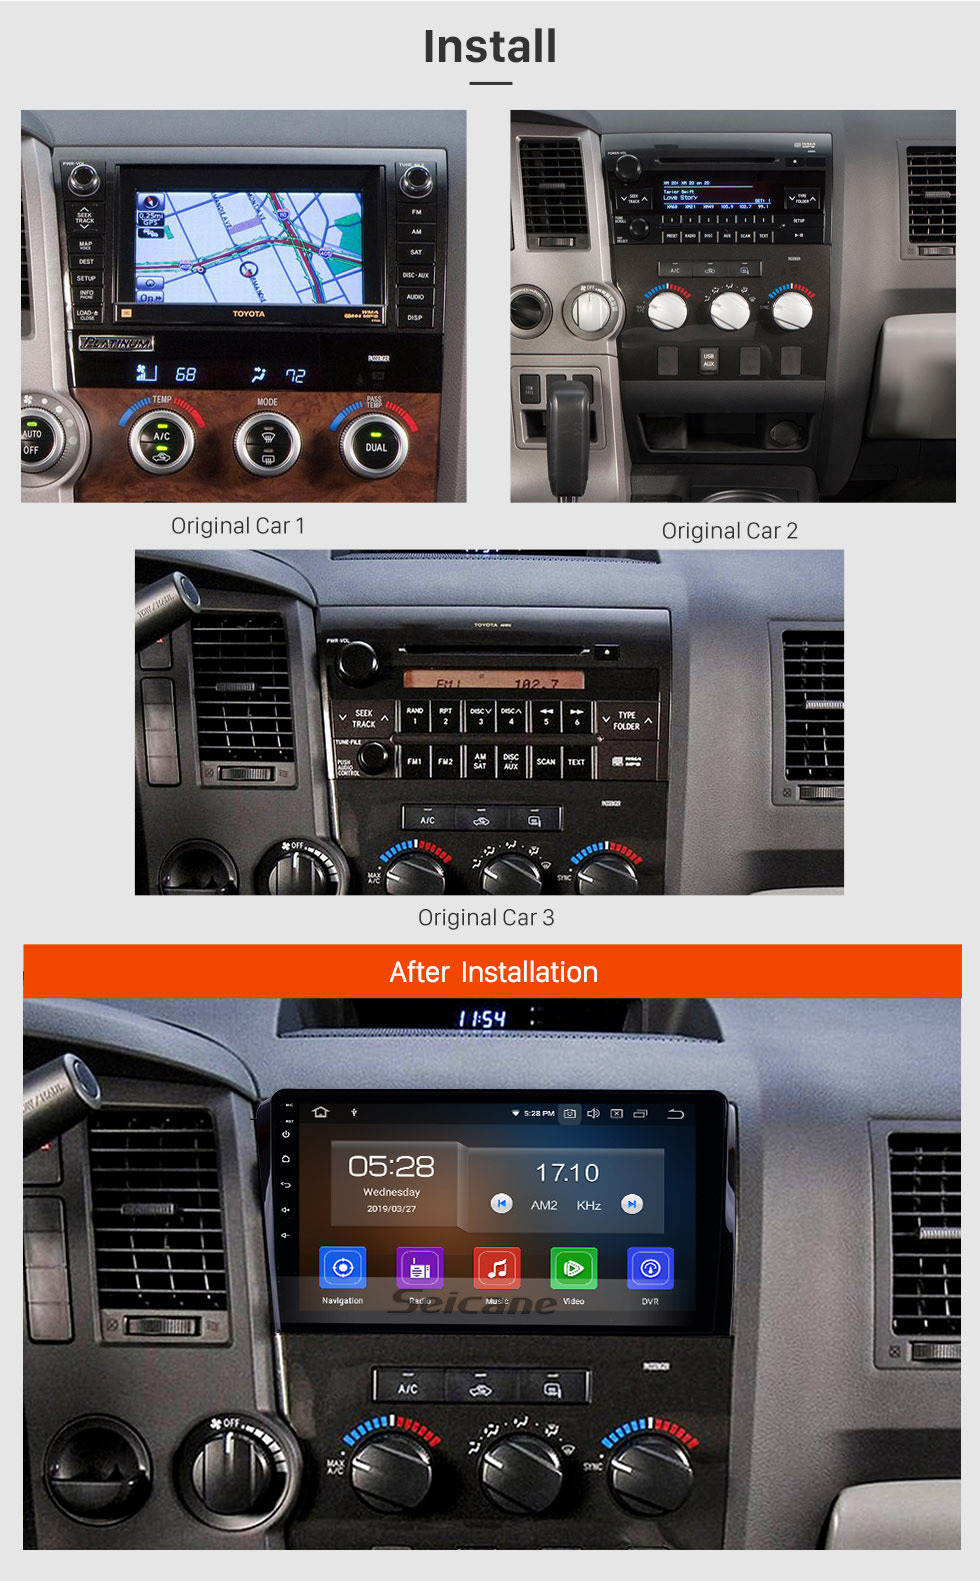 Seicane 10.1 inch Android 9.0 2006-2014 Toyota Sequoia GPS Navigation Radio IPS Full Screen with Music Bluetooth Support 3G WiFi OBD2 Steering Wheel Control